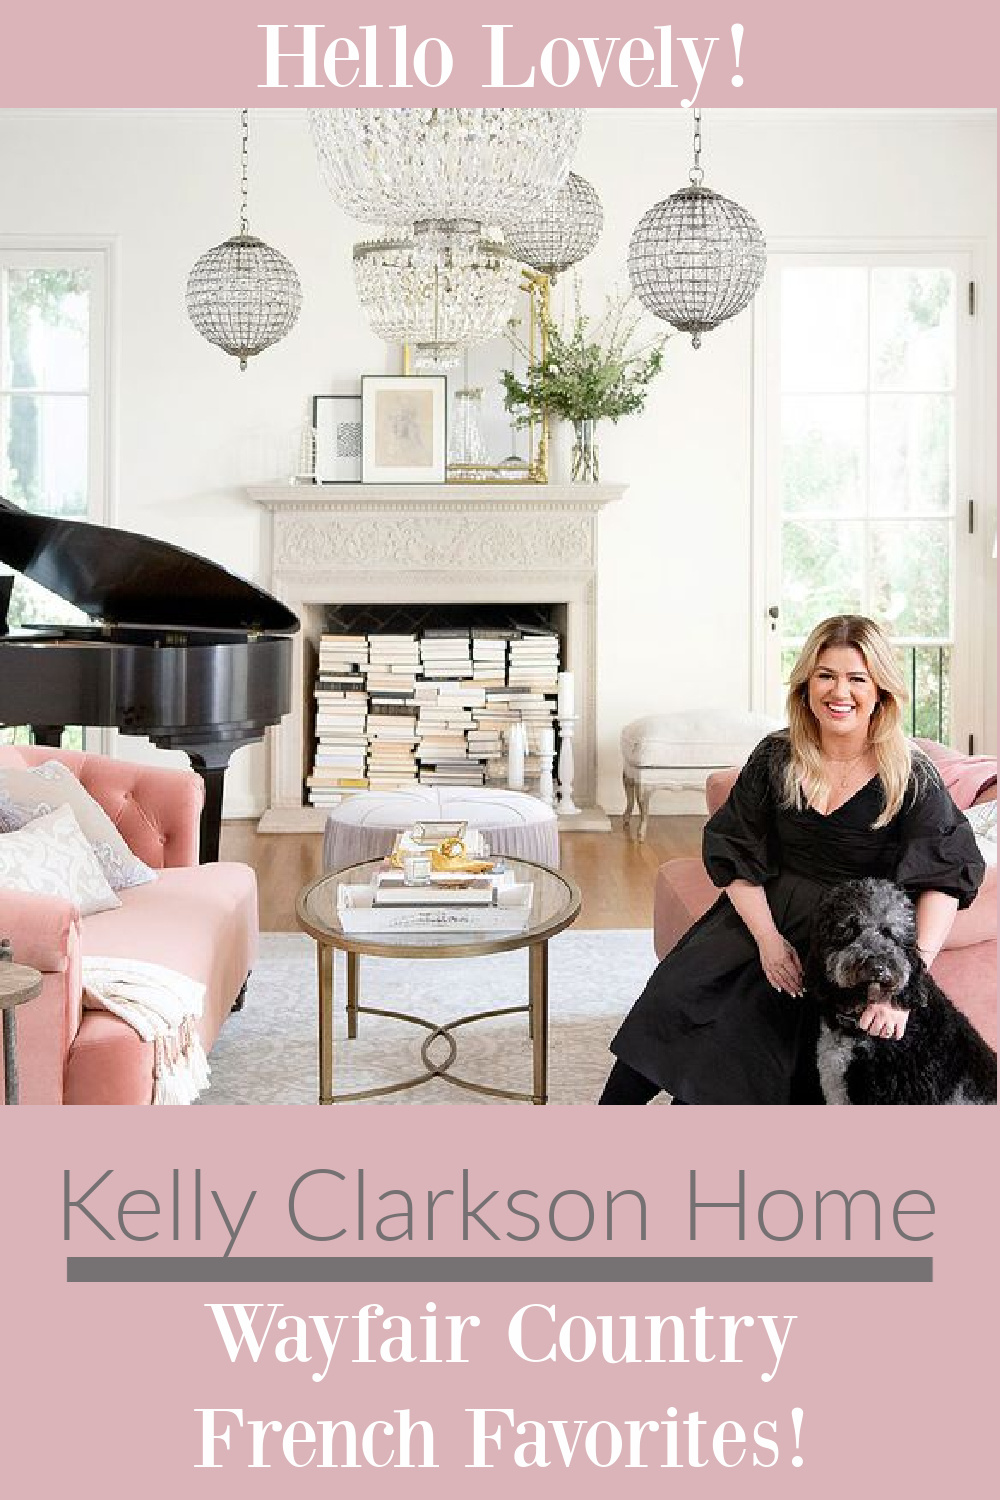 Kelly Clarkson Home Wayfair Country French Favorites on Hello Lovely! Come see Kelly's favorite furniture and decor finds you can score for your home. #frenchcountry #getthtelook #furniture